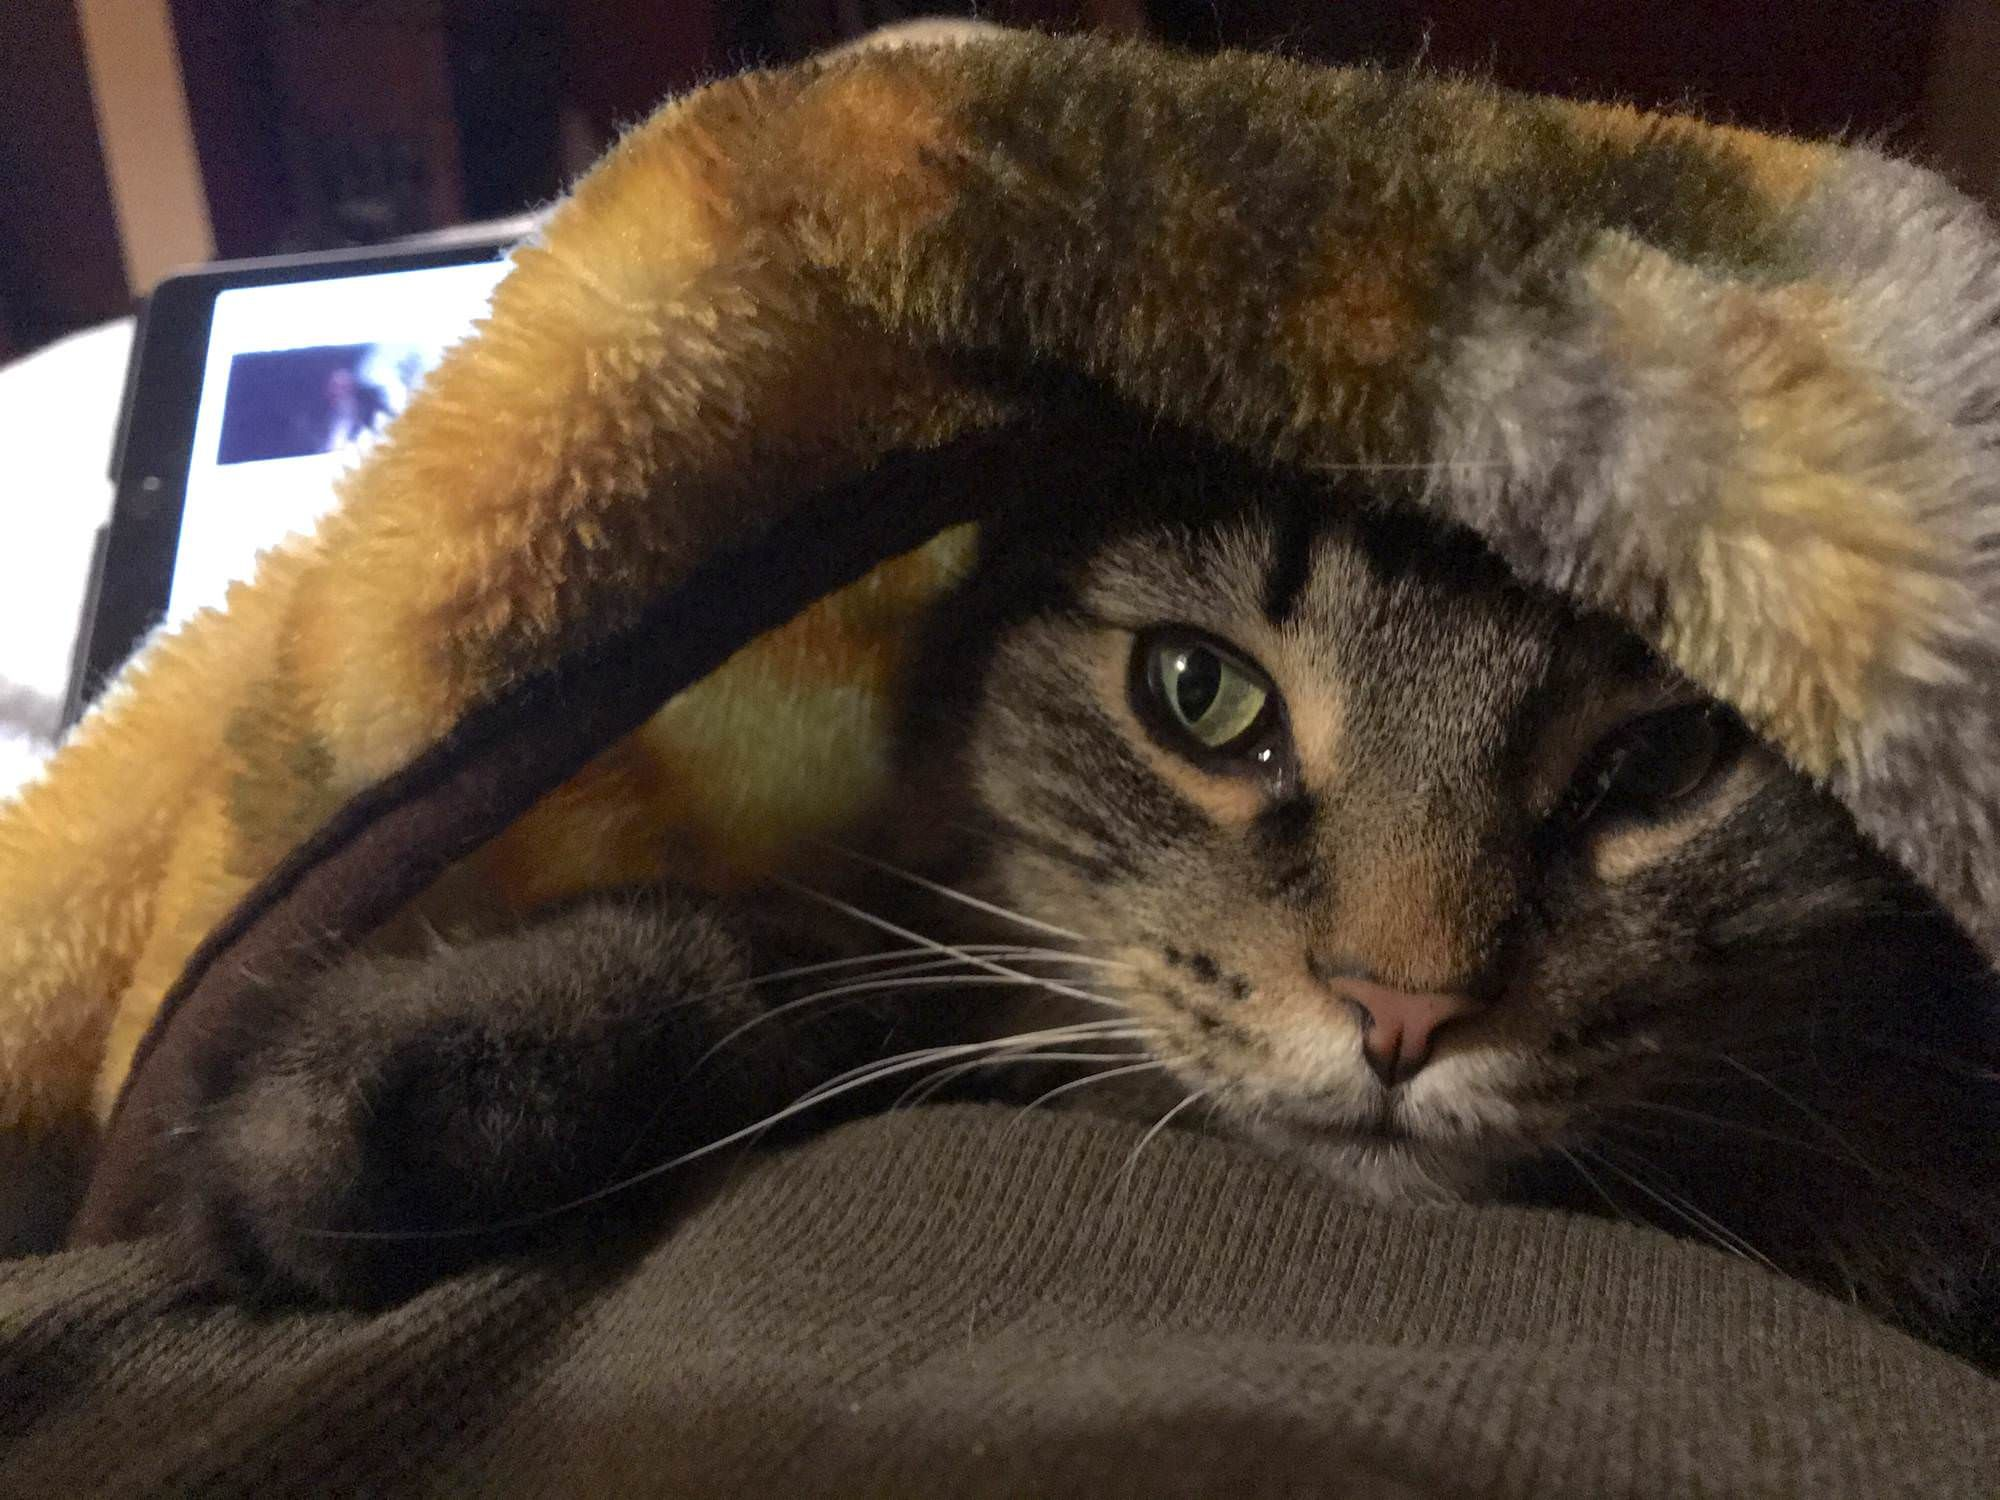 Orion M Loves Blanket Season Cat Pictures For Kids Beautiful Cats Pictures Tabby Cat